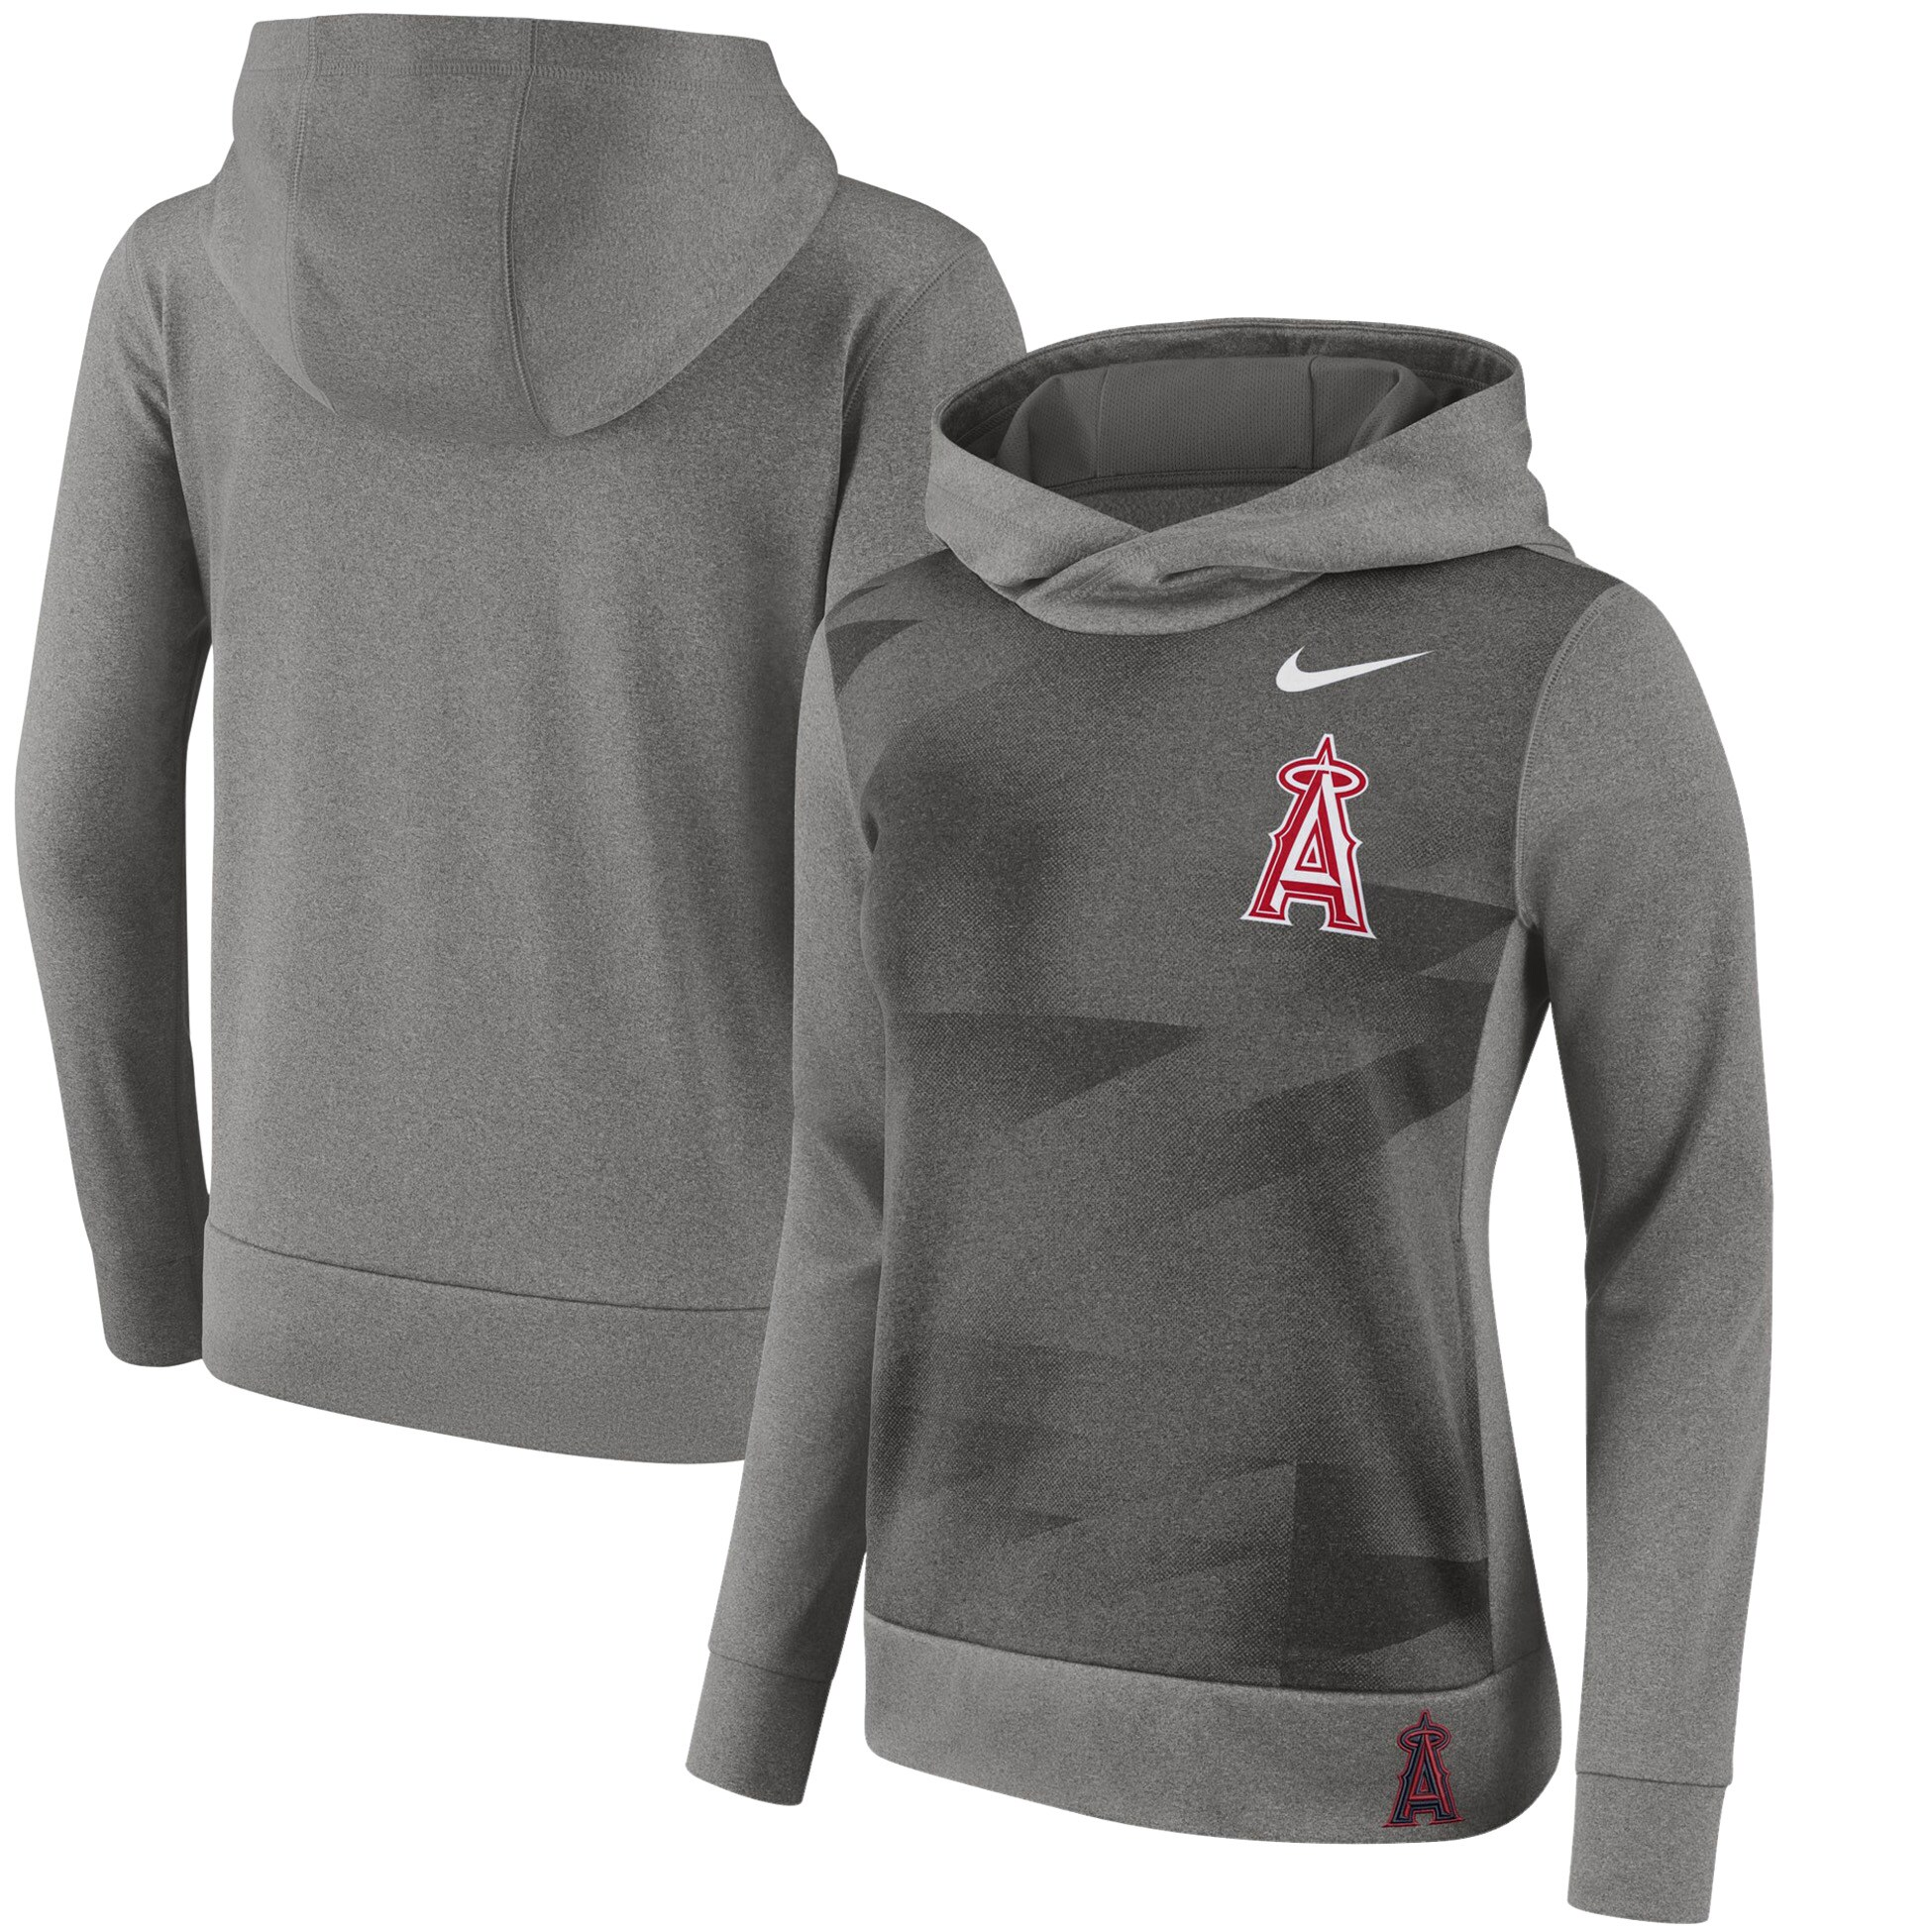 Los Angeles Angels Nike Women's Performance Pullover Hoodie - Gray